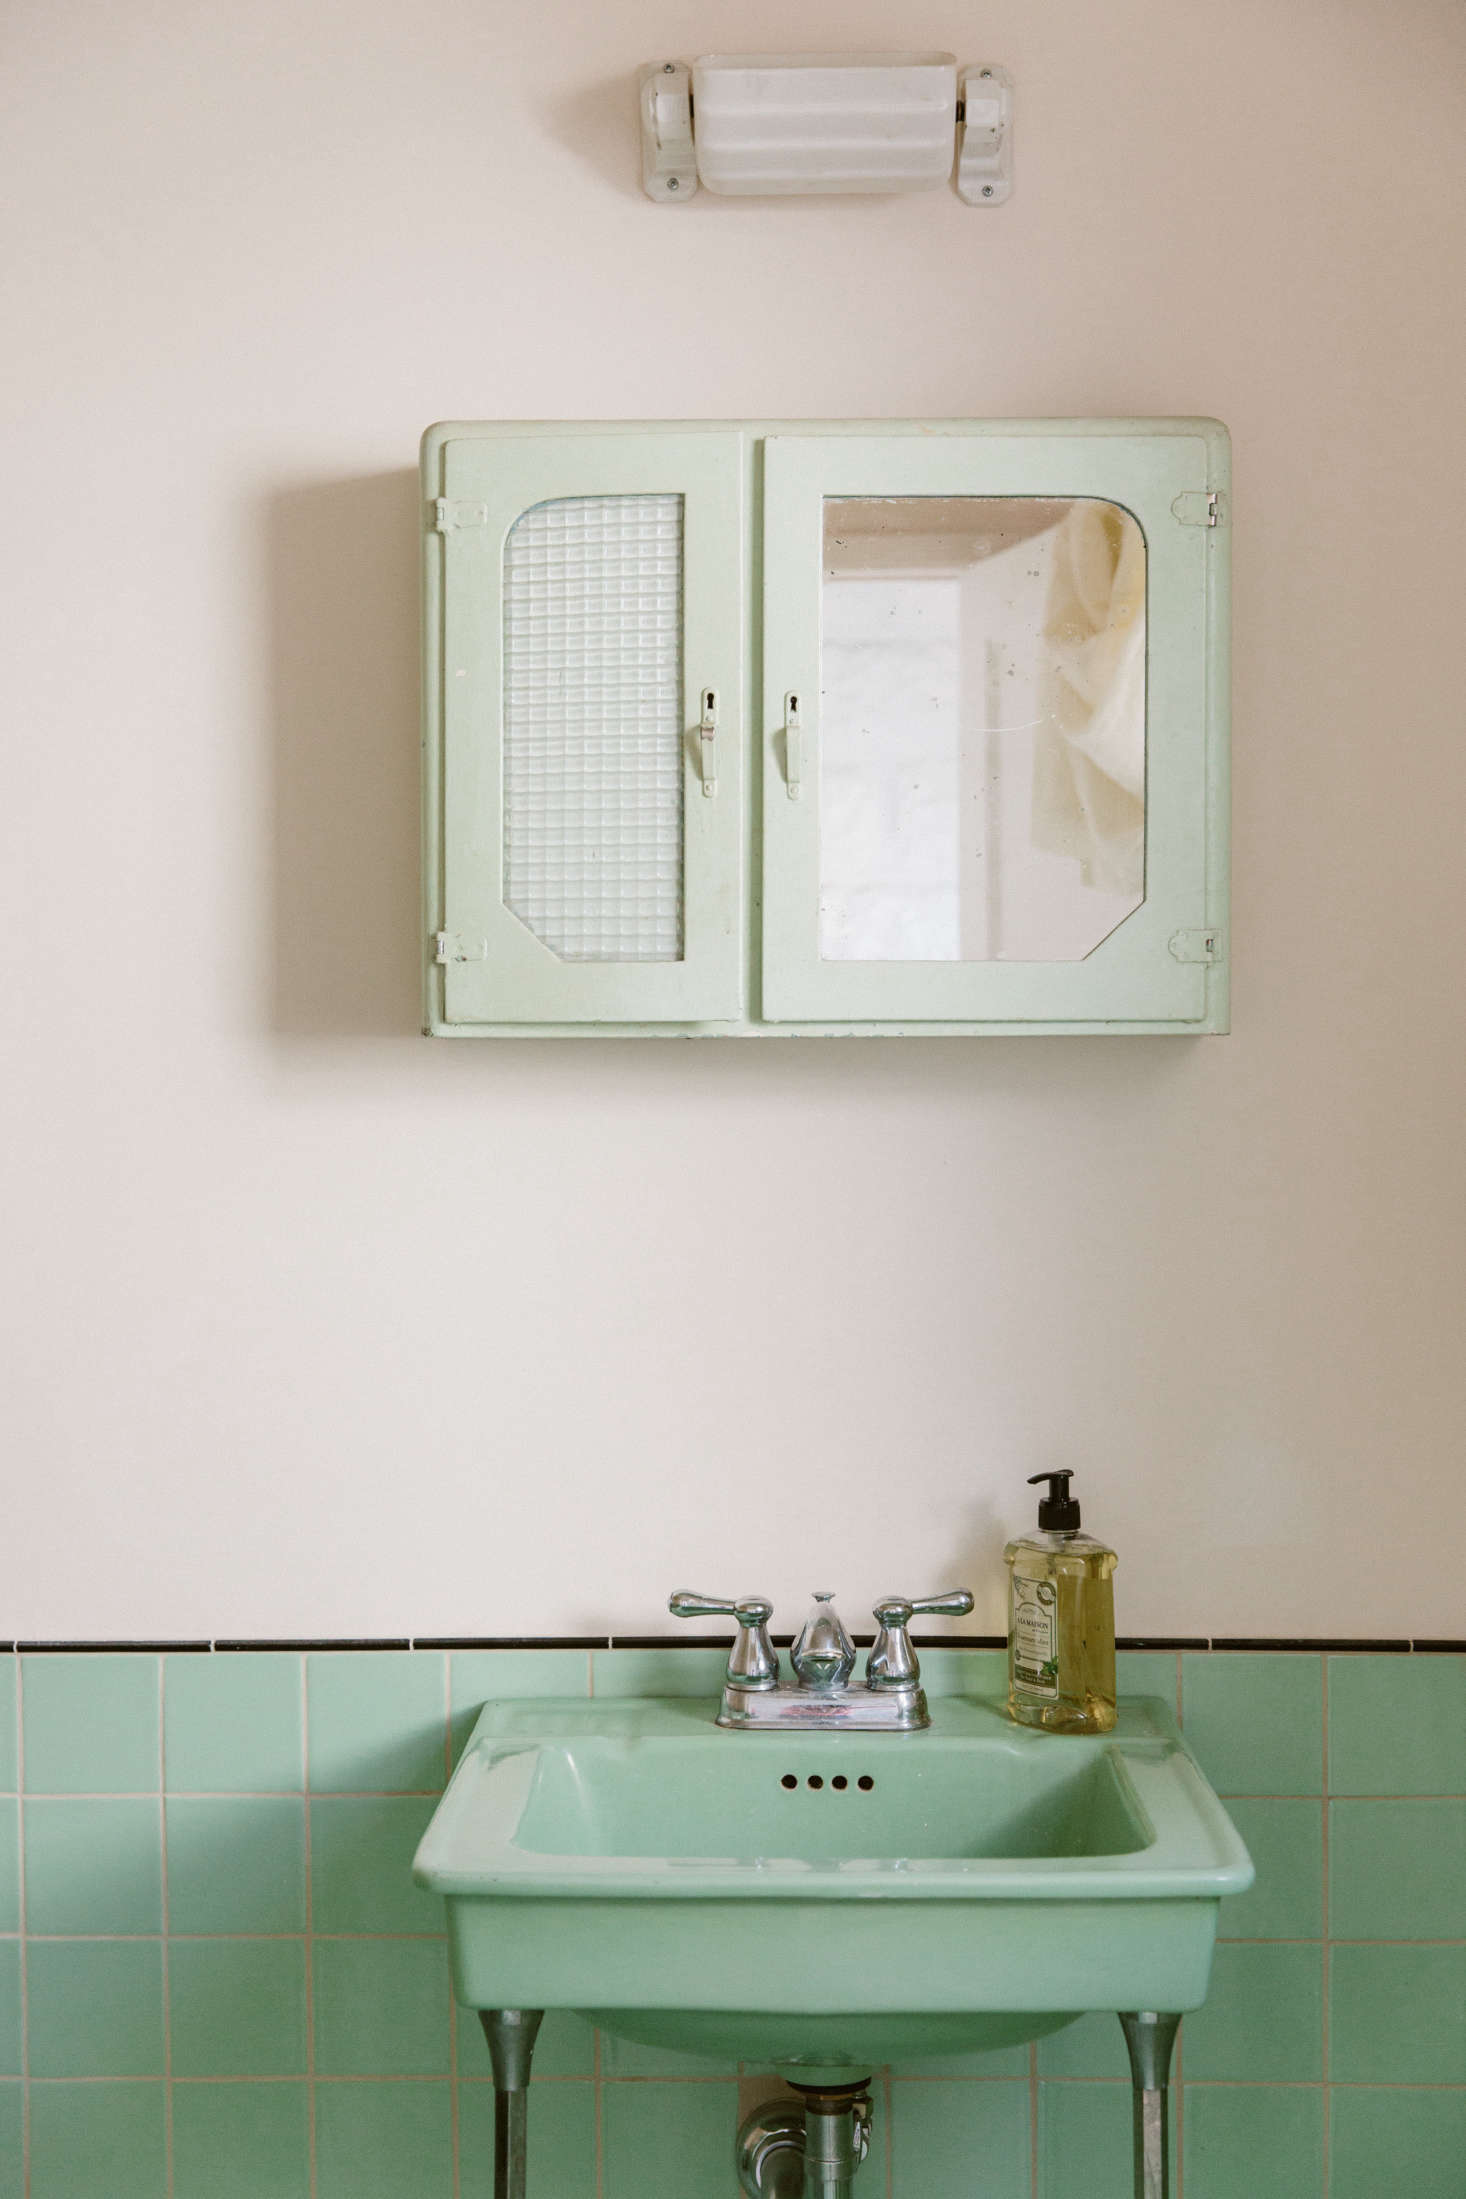 """The shop's bathroom only looks like it's been there forever. """"There was an existing bathroom, but it had seen better days,"""" O'Rourke says. """"We replaced all the fixtures with the antique minty-colored ones, also sourced locally in LA; then we found new tiles to match."""""""